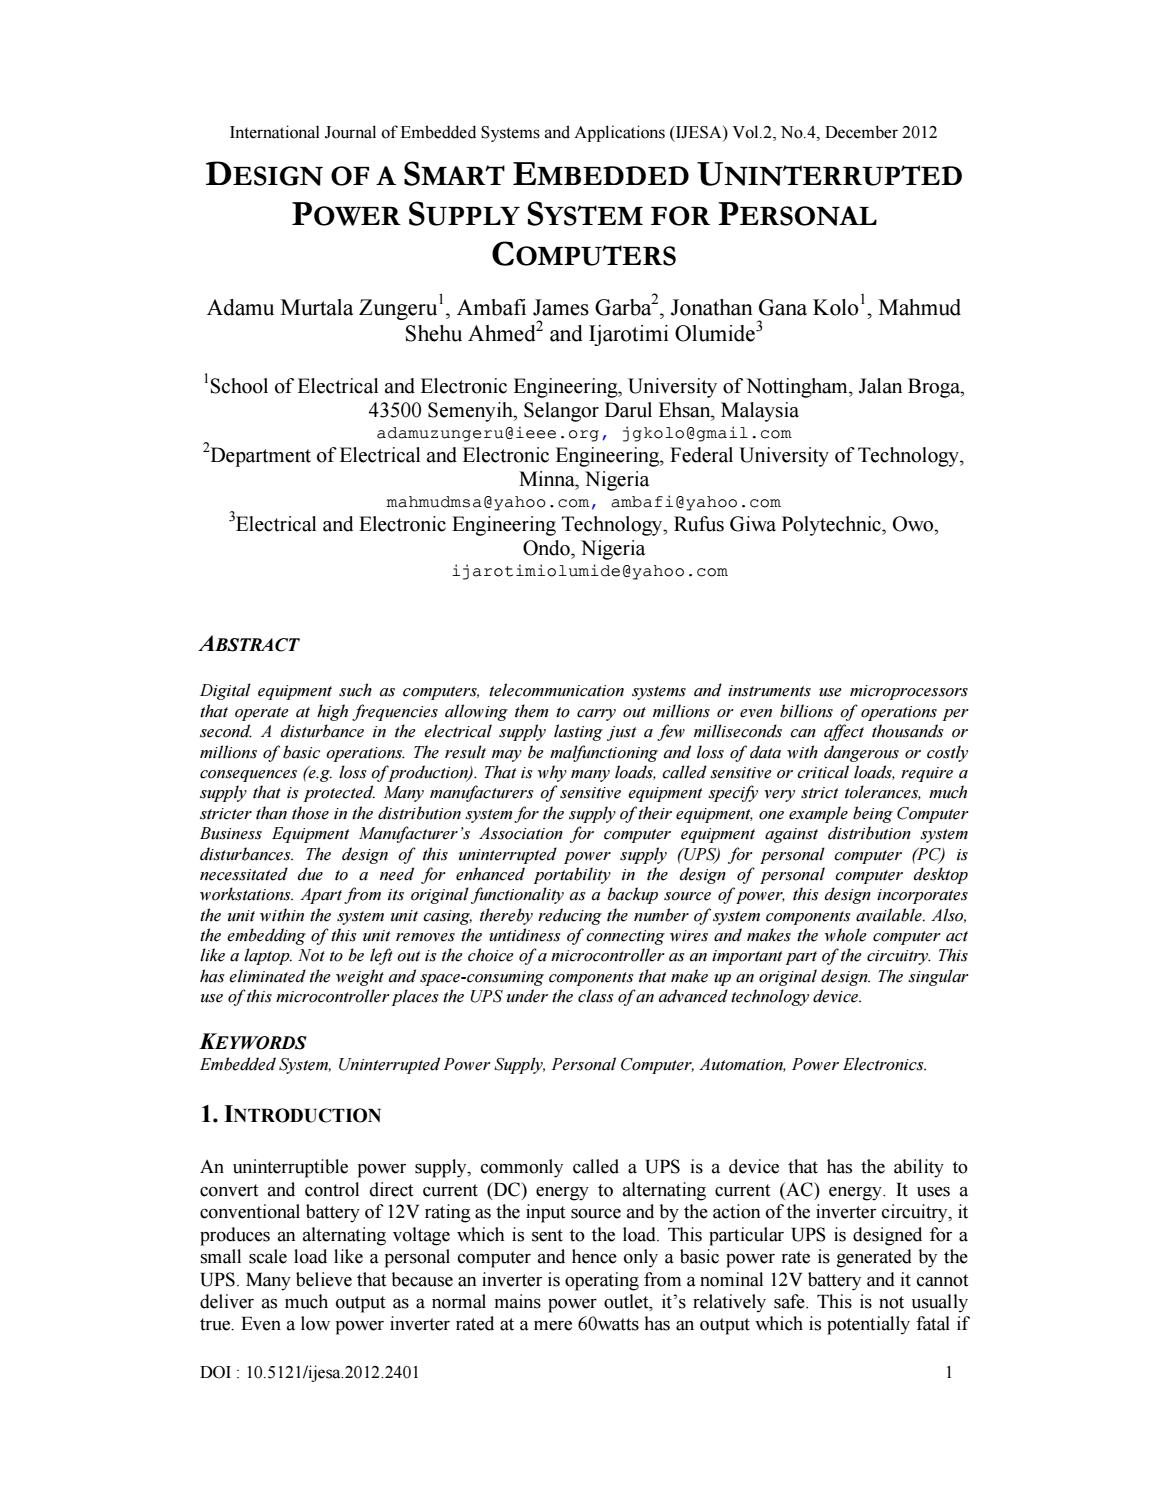 Design Of A Smart Embedded Uninterrupted Power Supply System For Personal Computers By Ijesa Journal Issuu